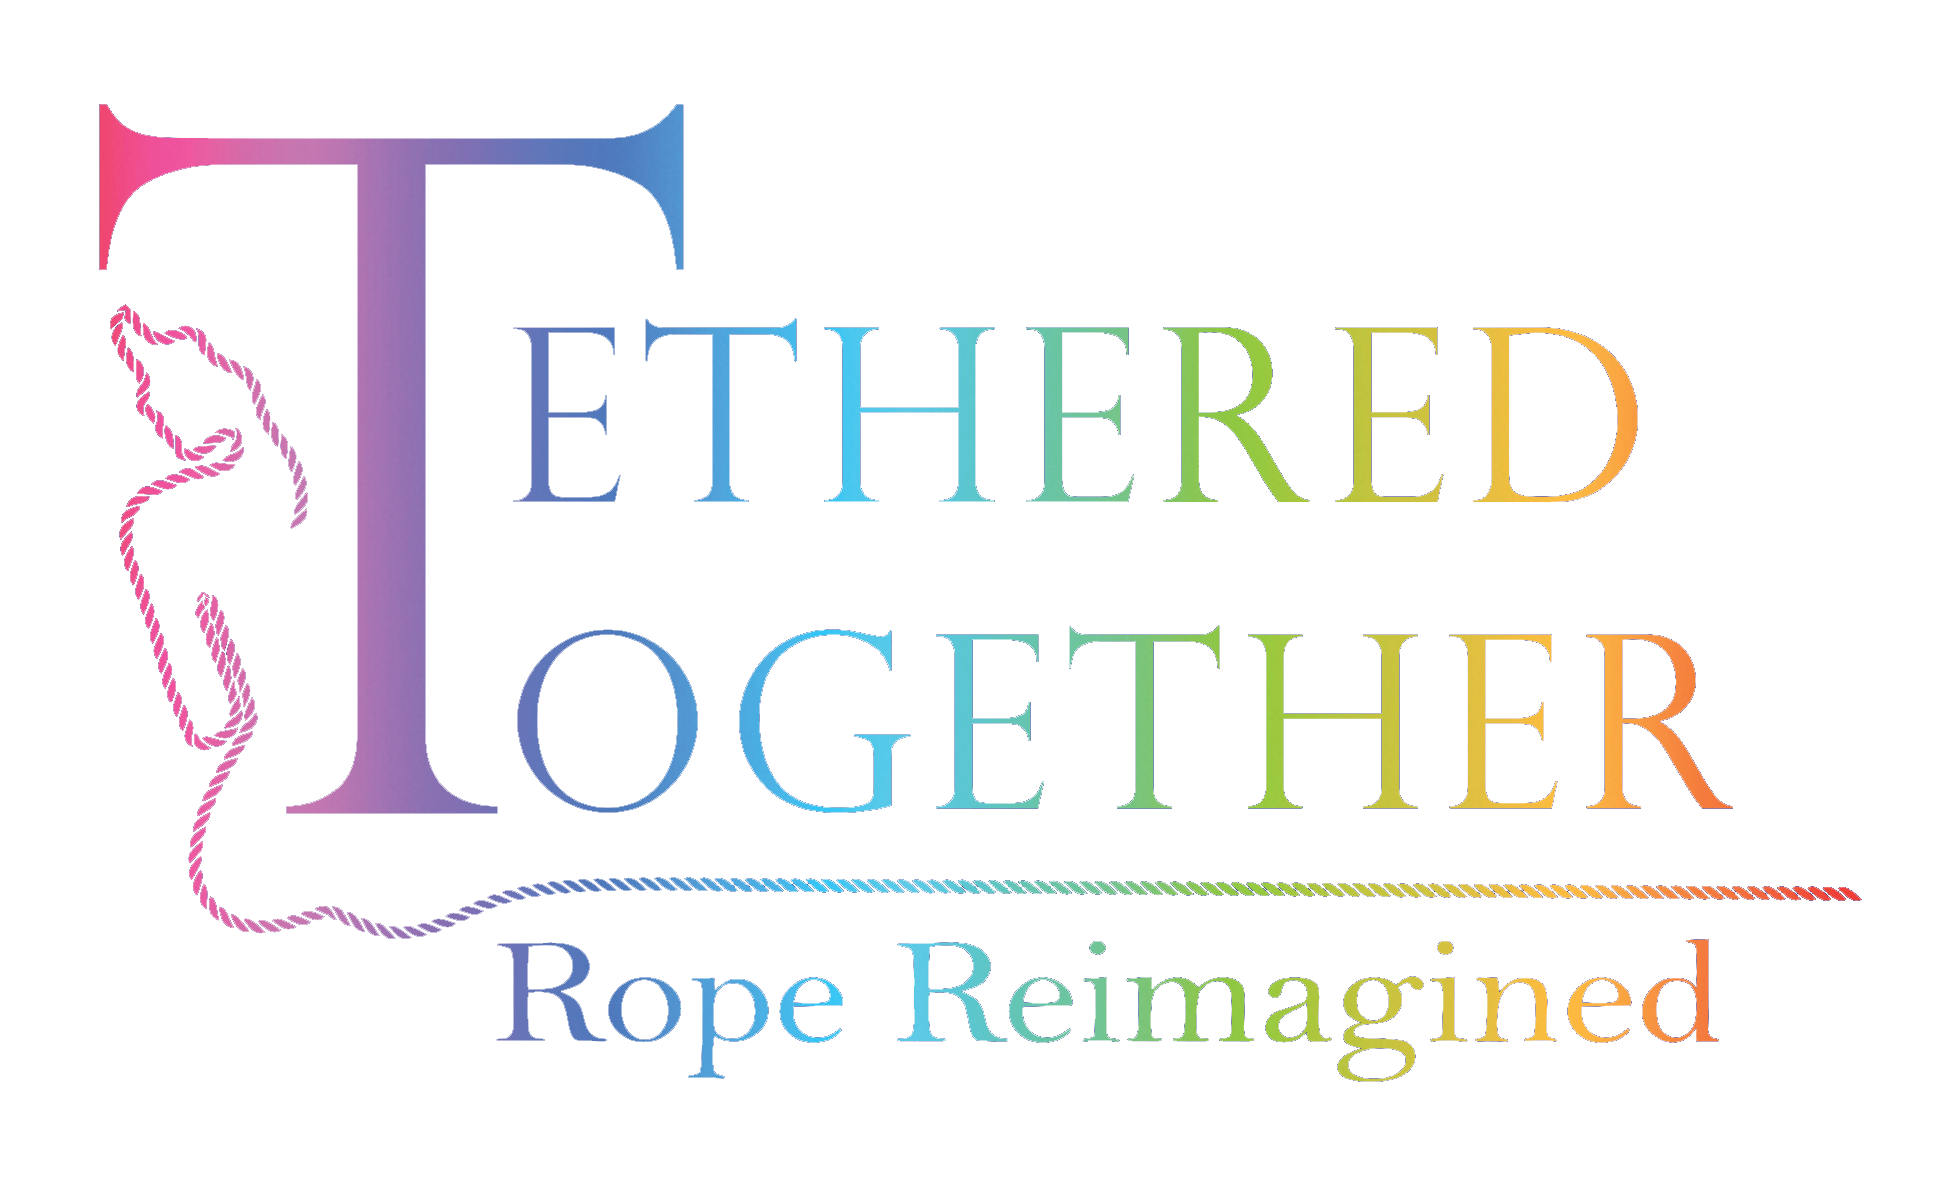 Tethered Together